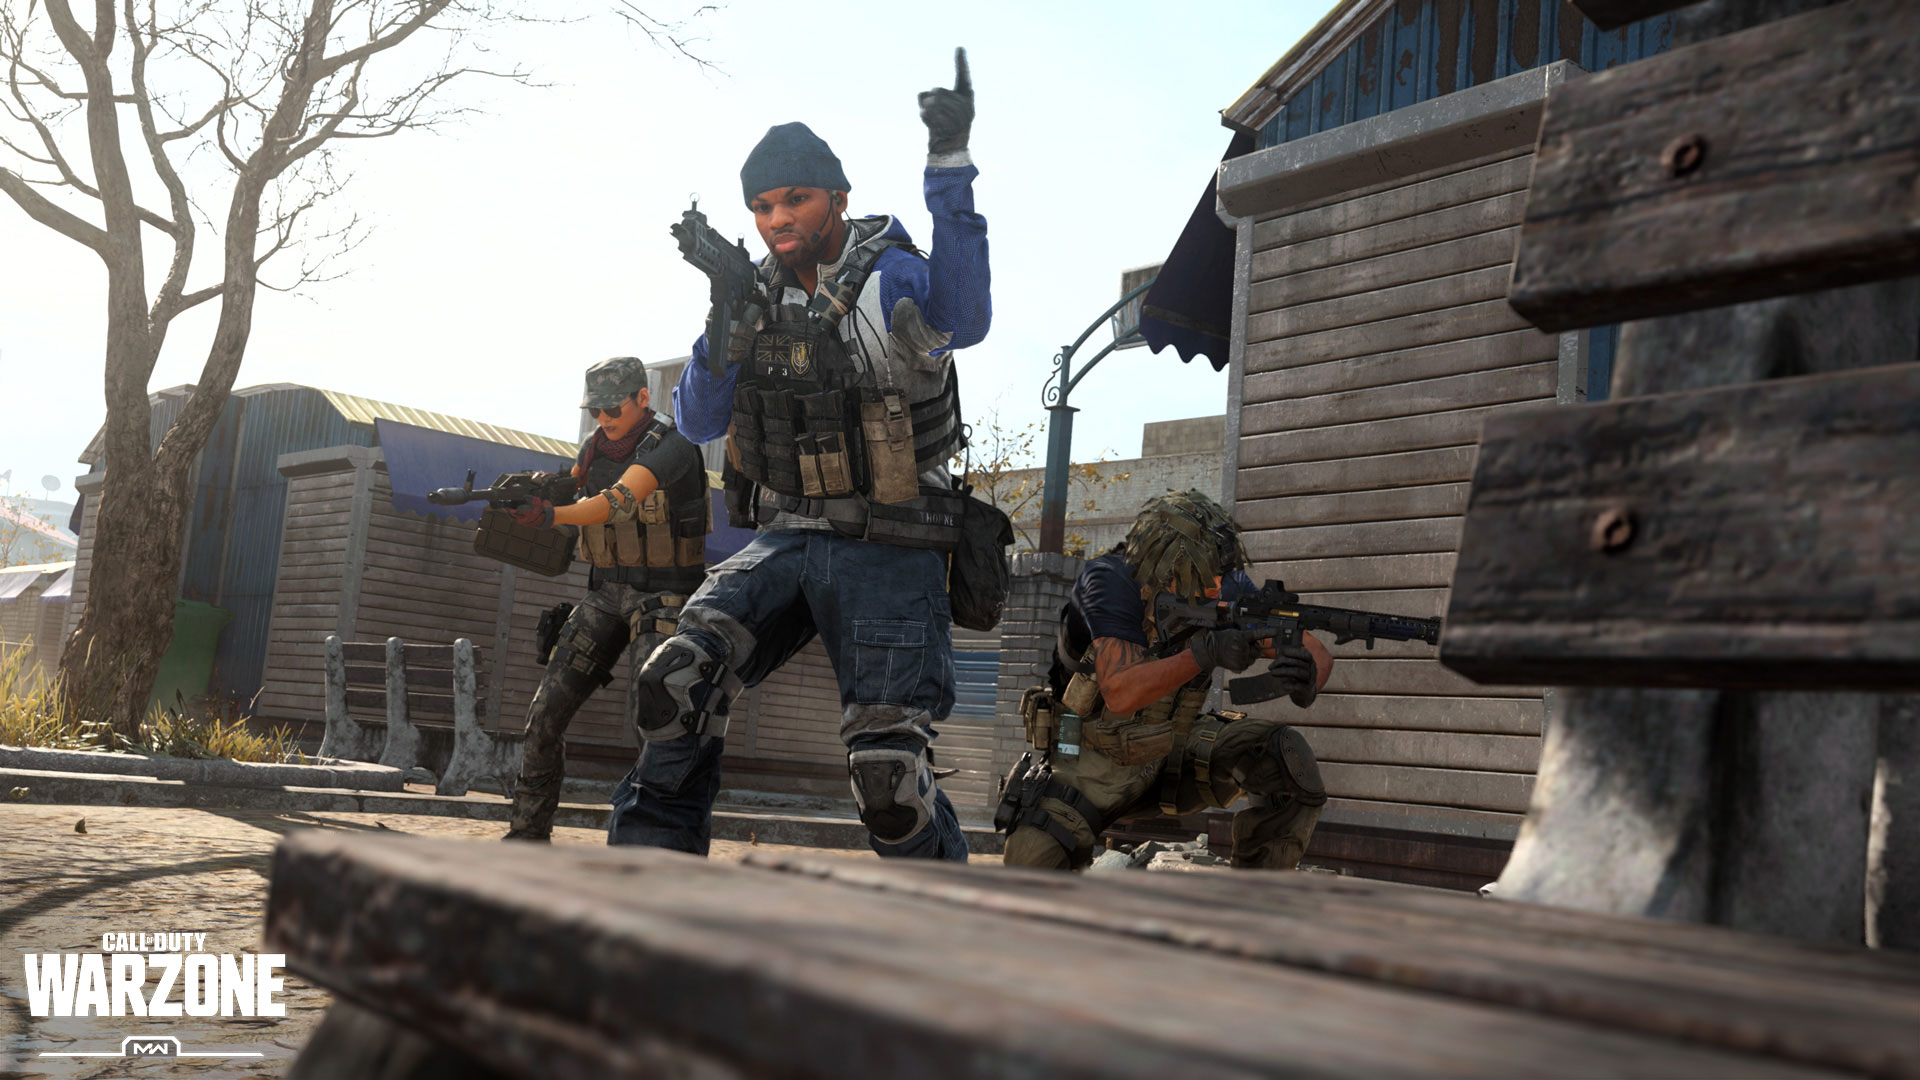 The Rank Up Report #25: Badass Ronin and 25 Warzone Tip Celebration - Image 4